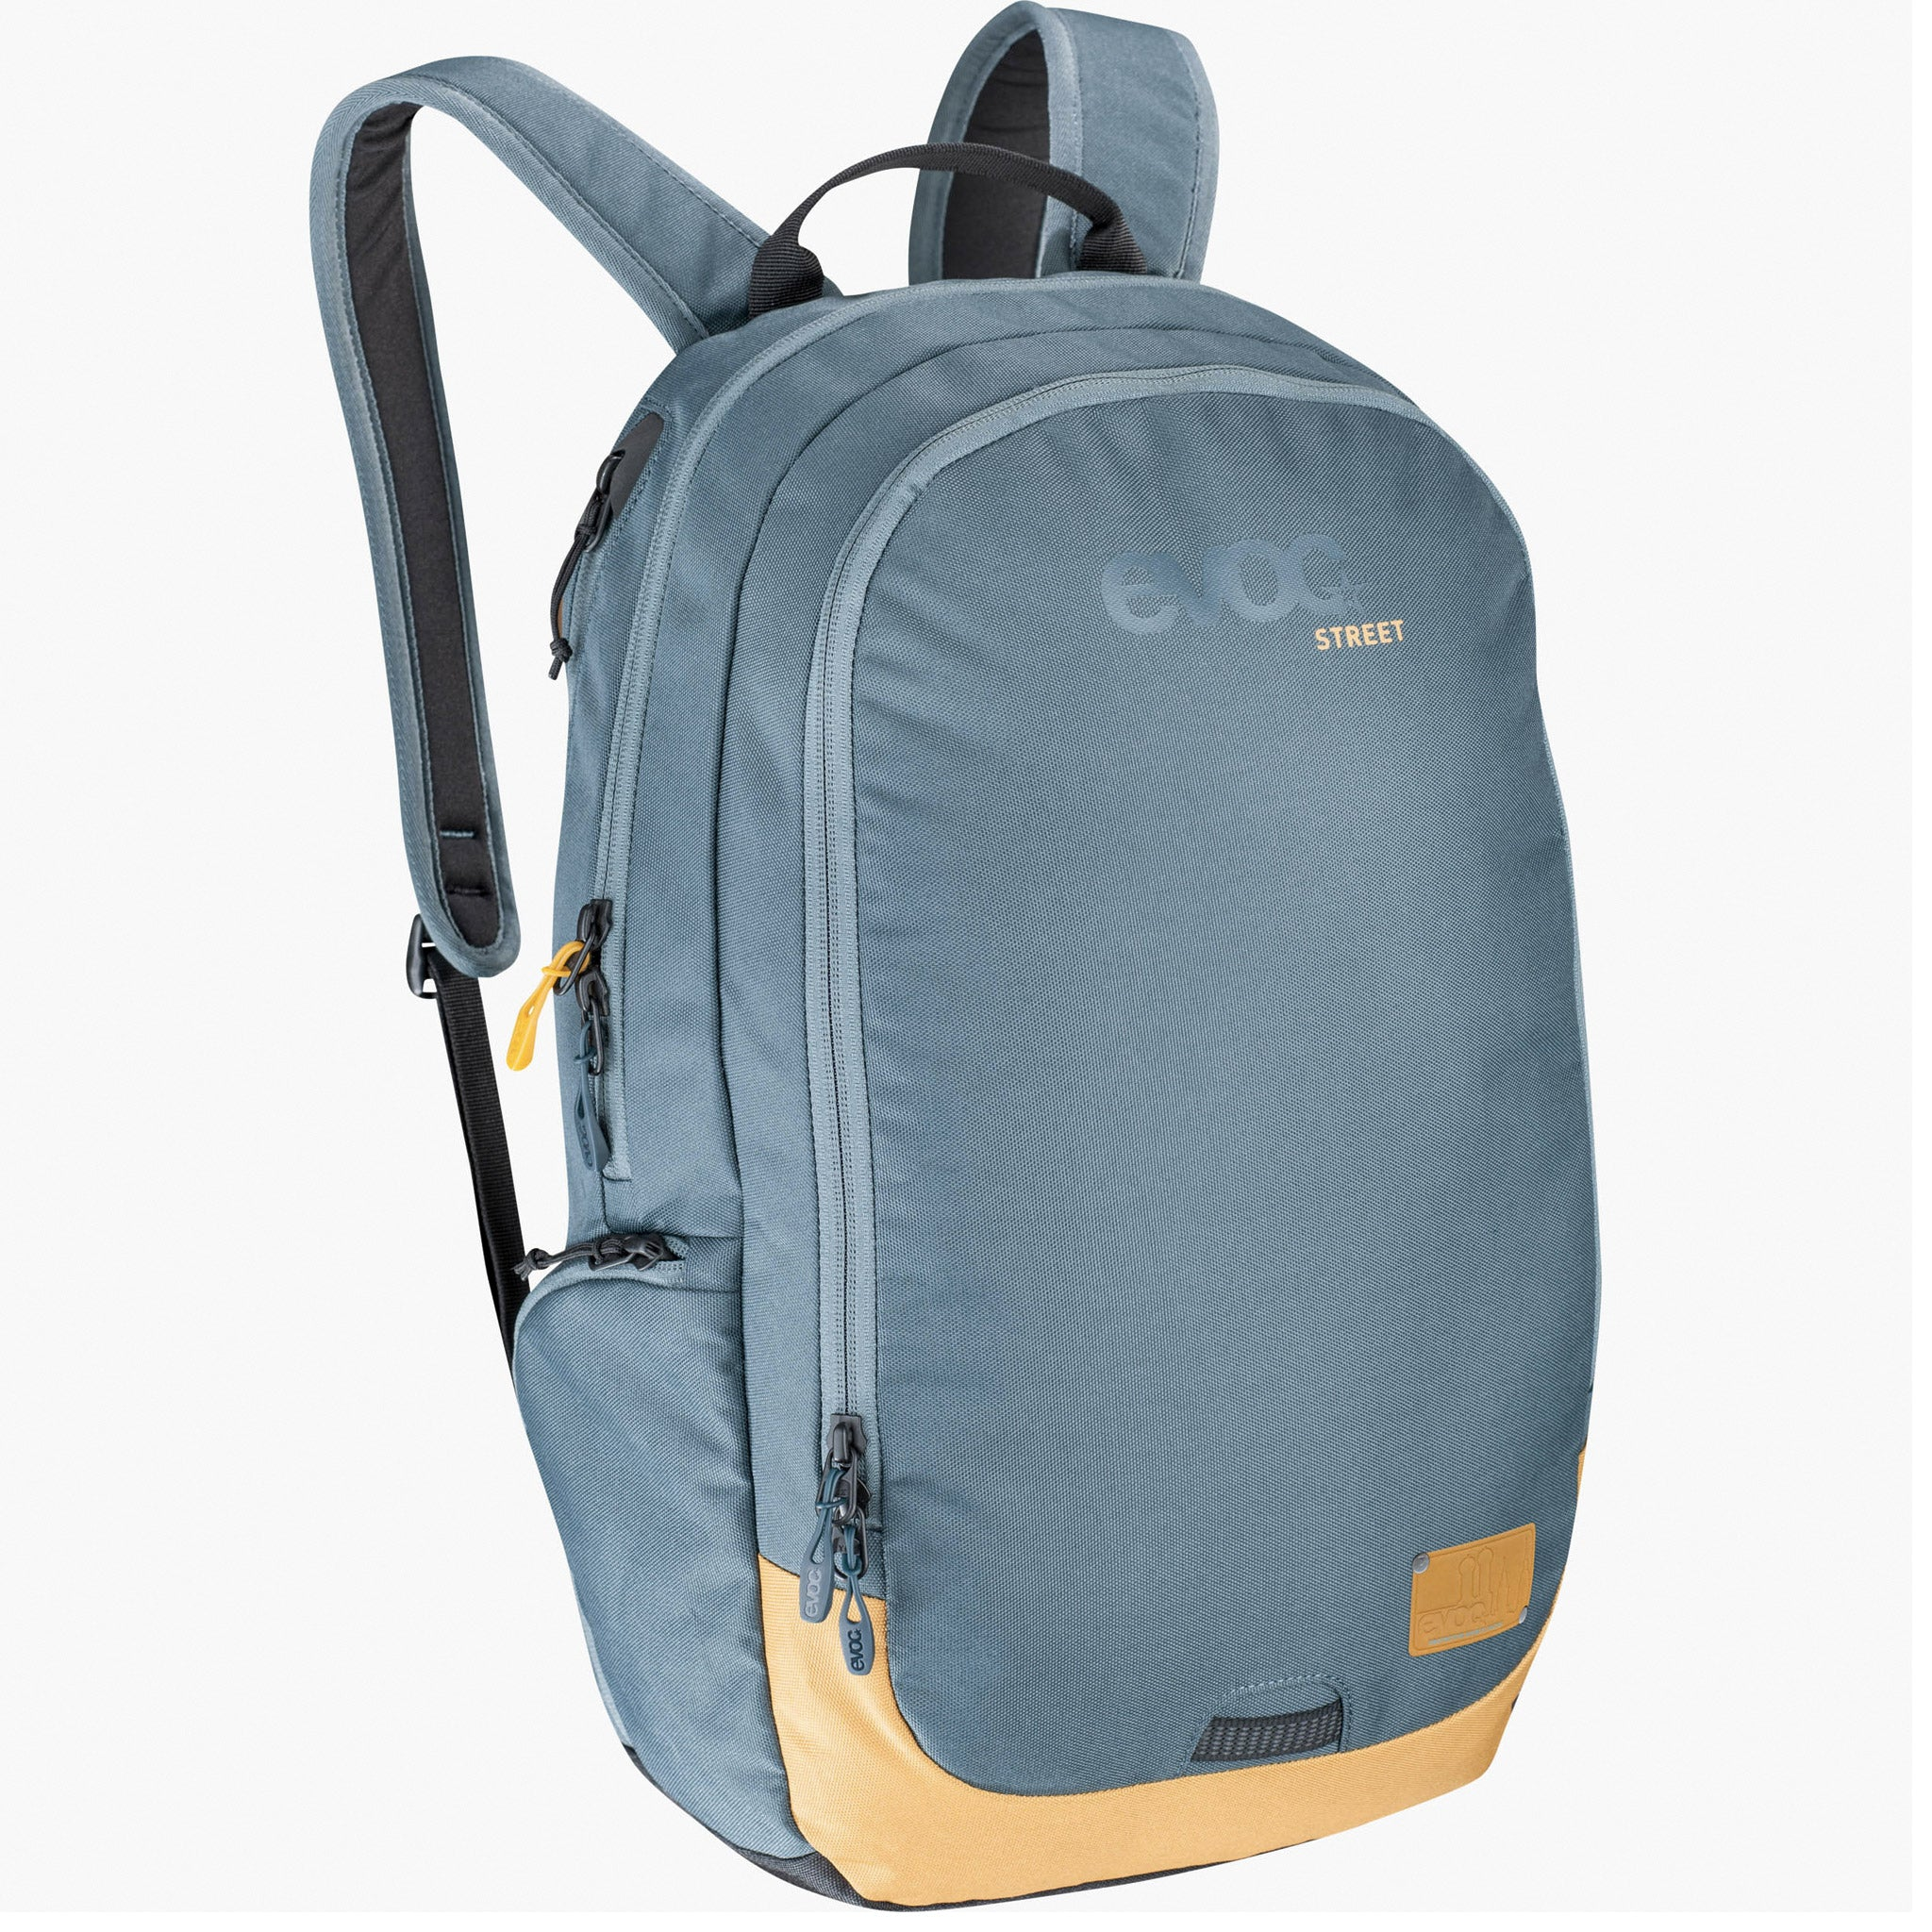 Evoc Street Bag Backpack 25 Litre, Slate, buy online at Woolys Wheels with free delivery